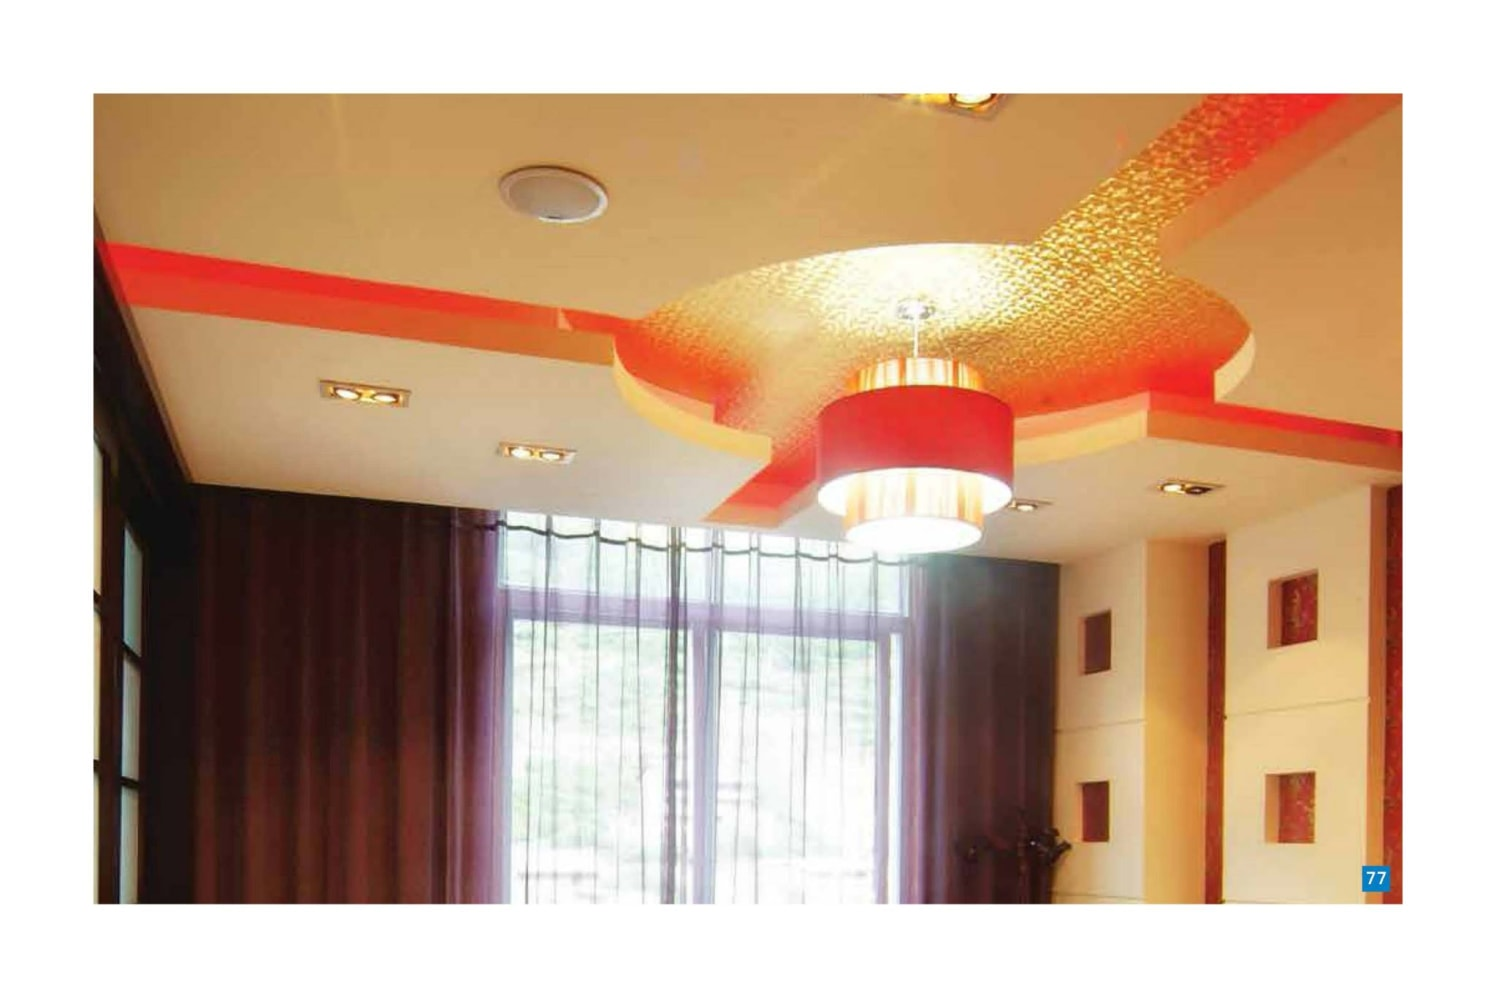 Marble Finished False Ceiling With Orange Highlights by Regalias Interiors Living-room Contemporary | Interior Design Photos & Ideas